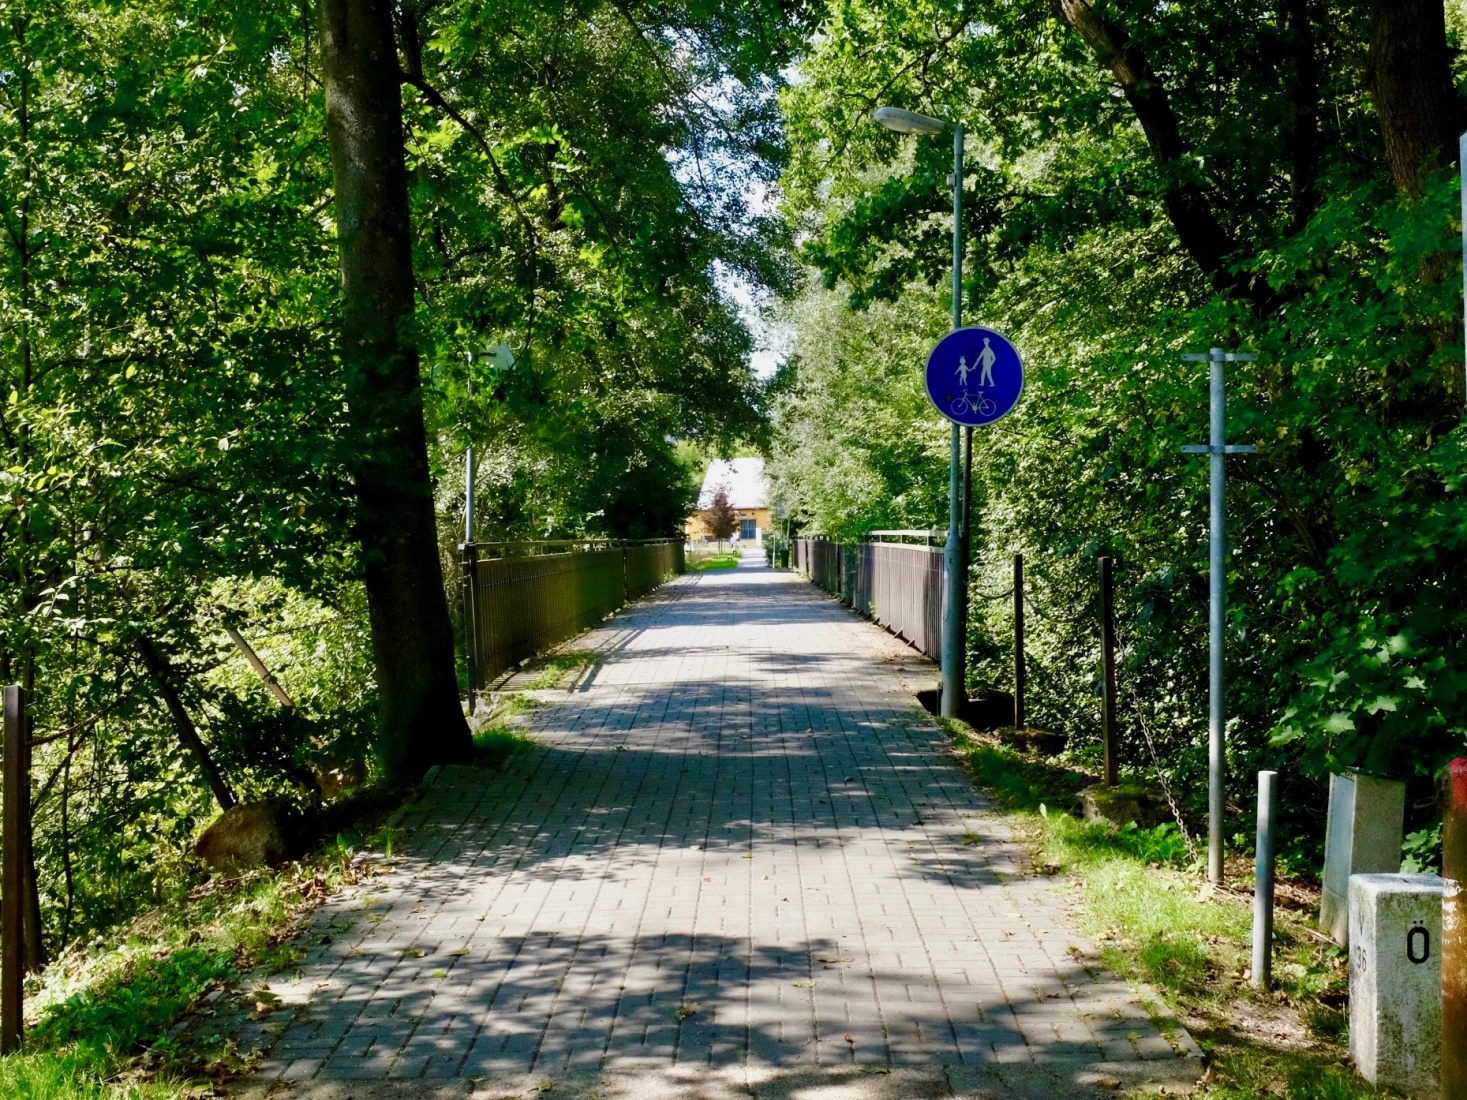 A former narrow railroad, now a hiking and cycling trail, which connects the area around České Velenice, Czech Republic and Gmünd, Austria.